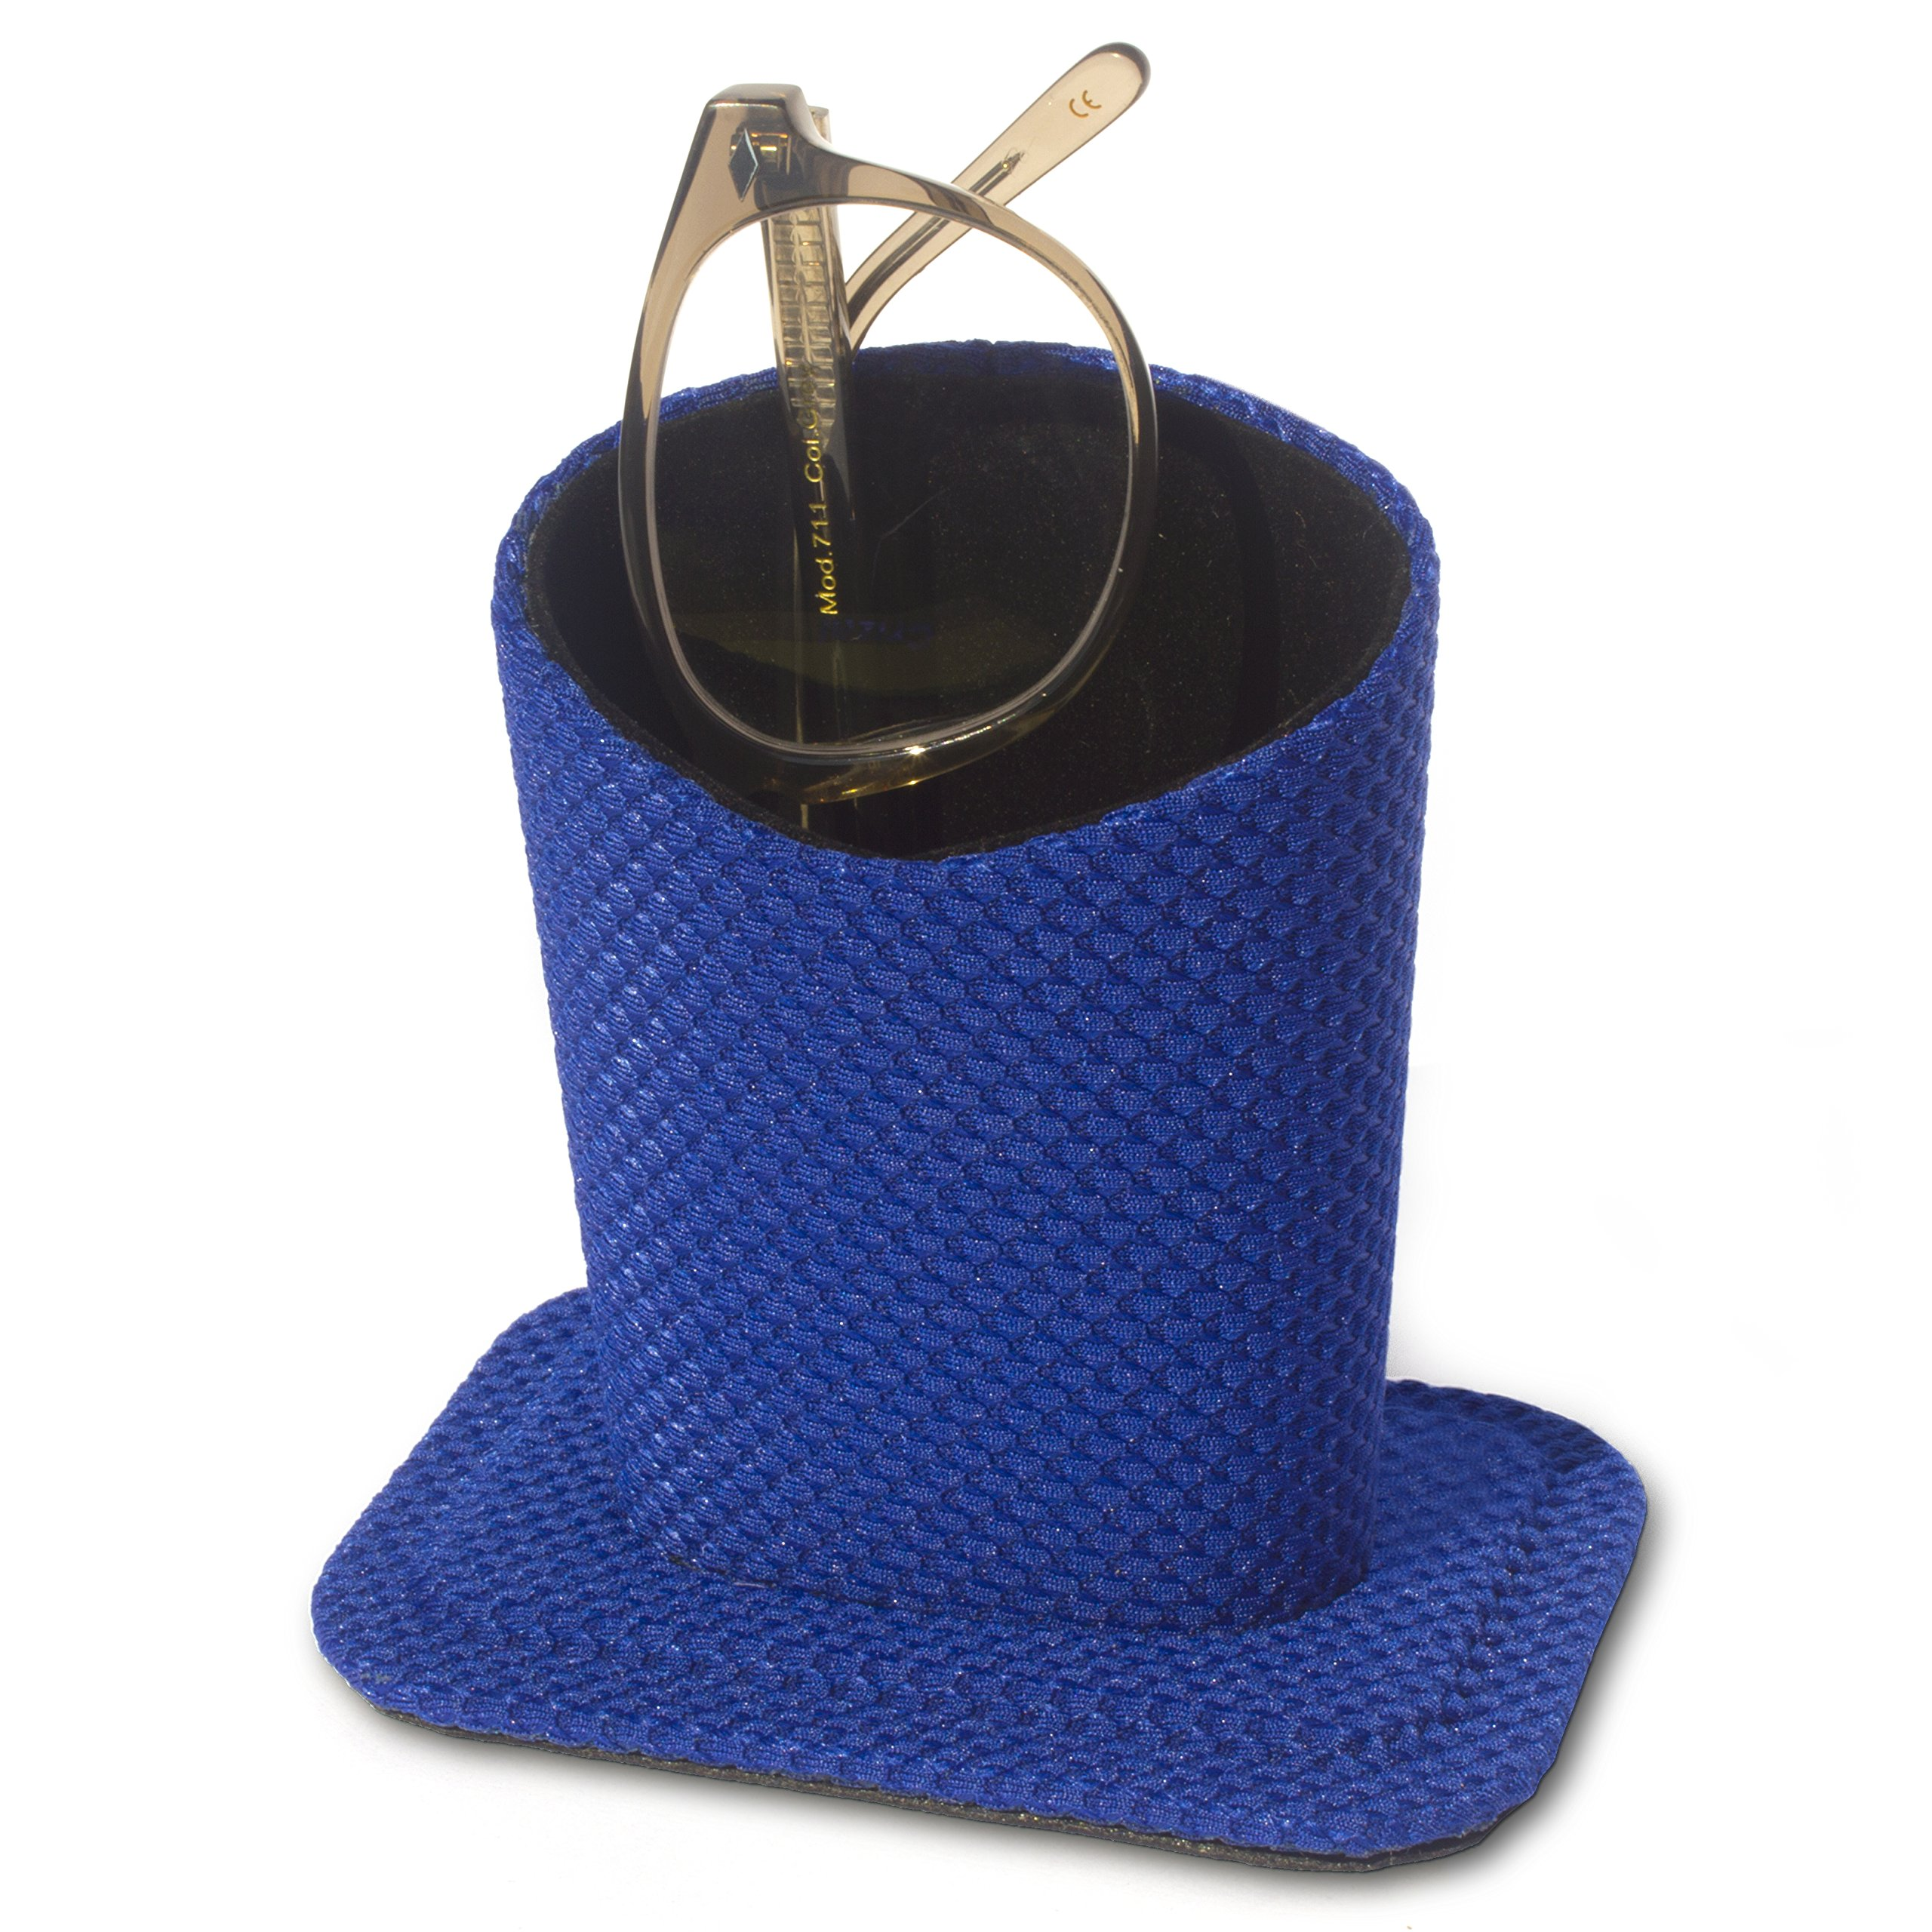 Holdie Eyeglass Holder - NO Plush NO Smudge - Never Lose Your Glasses Again - Protect Your Expensive Eyeglasses - Modern Stand Design for All Ages - 100% Money-Back Guarantee [Cobalt Blue]